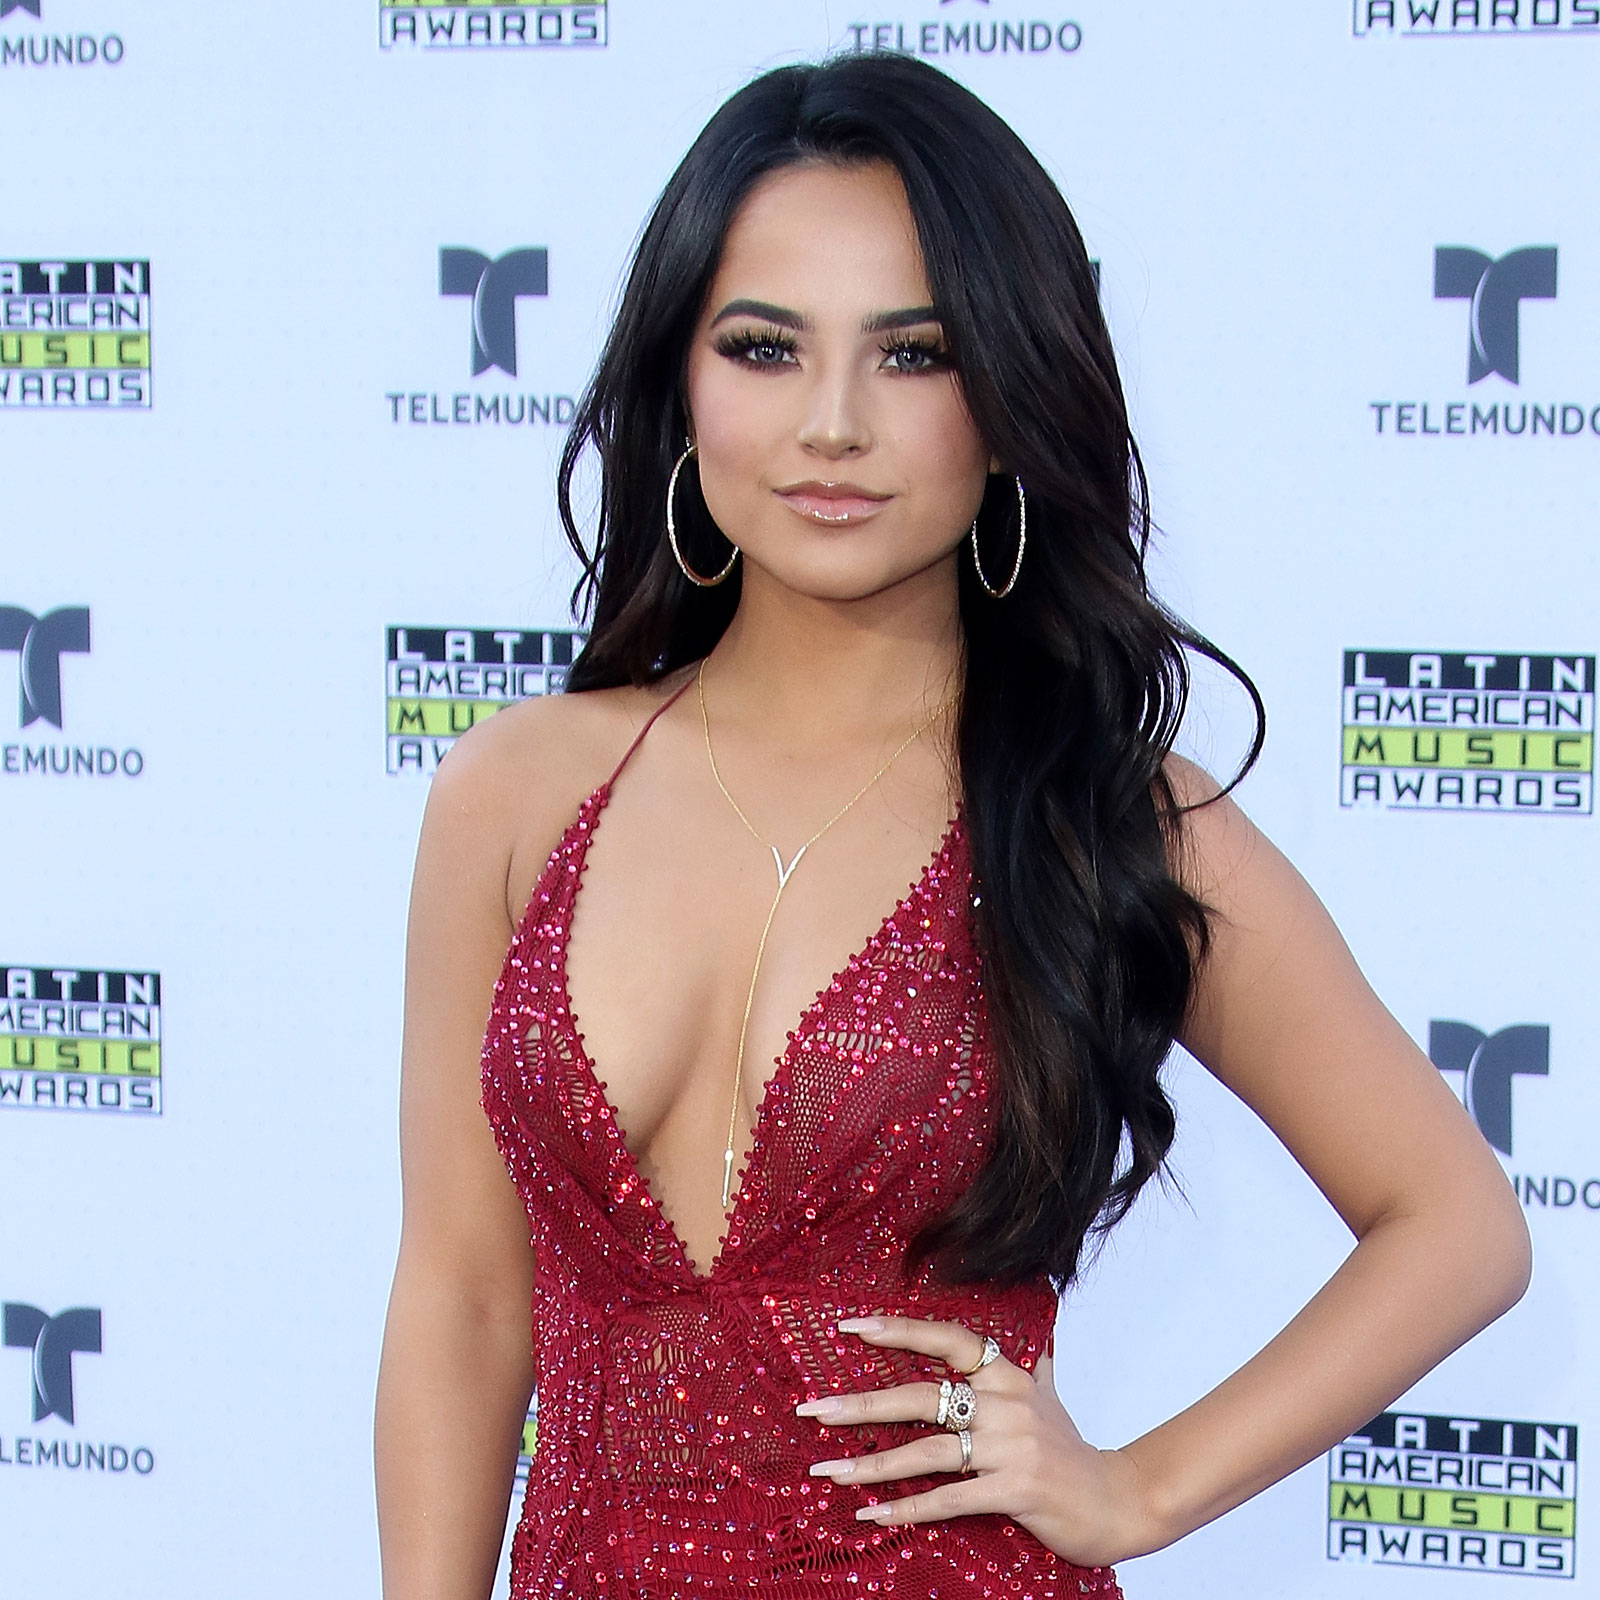 Becky G, latin american music awards, look, belleza,